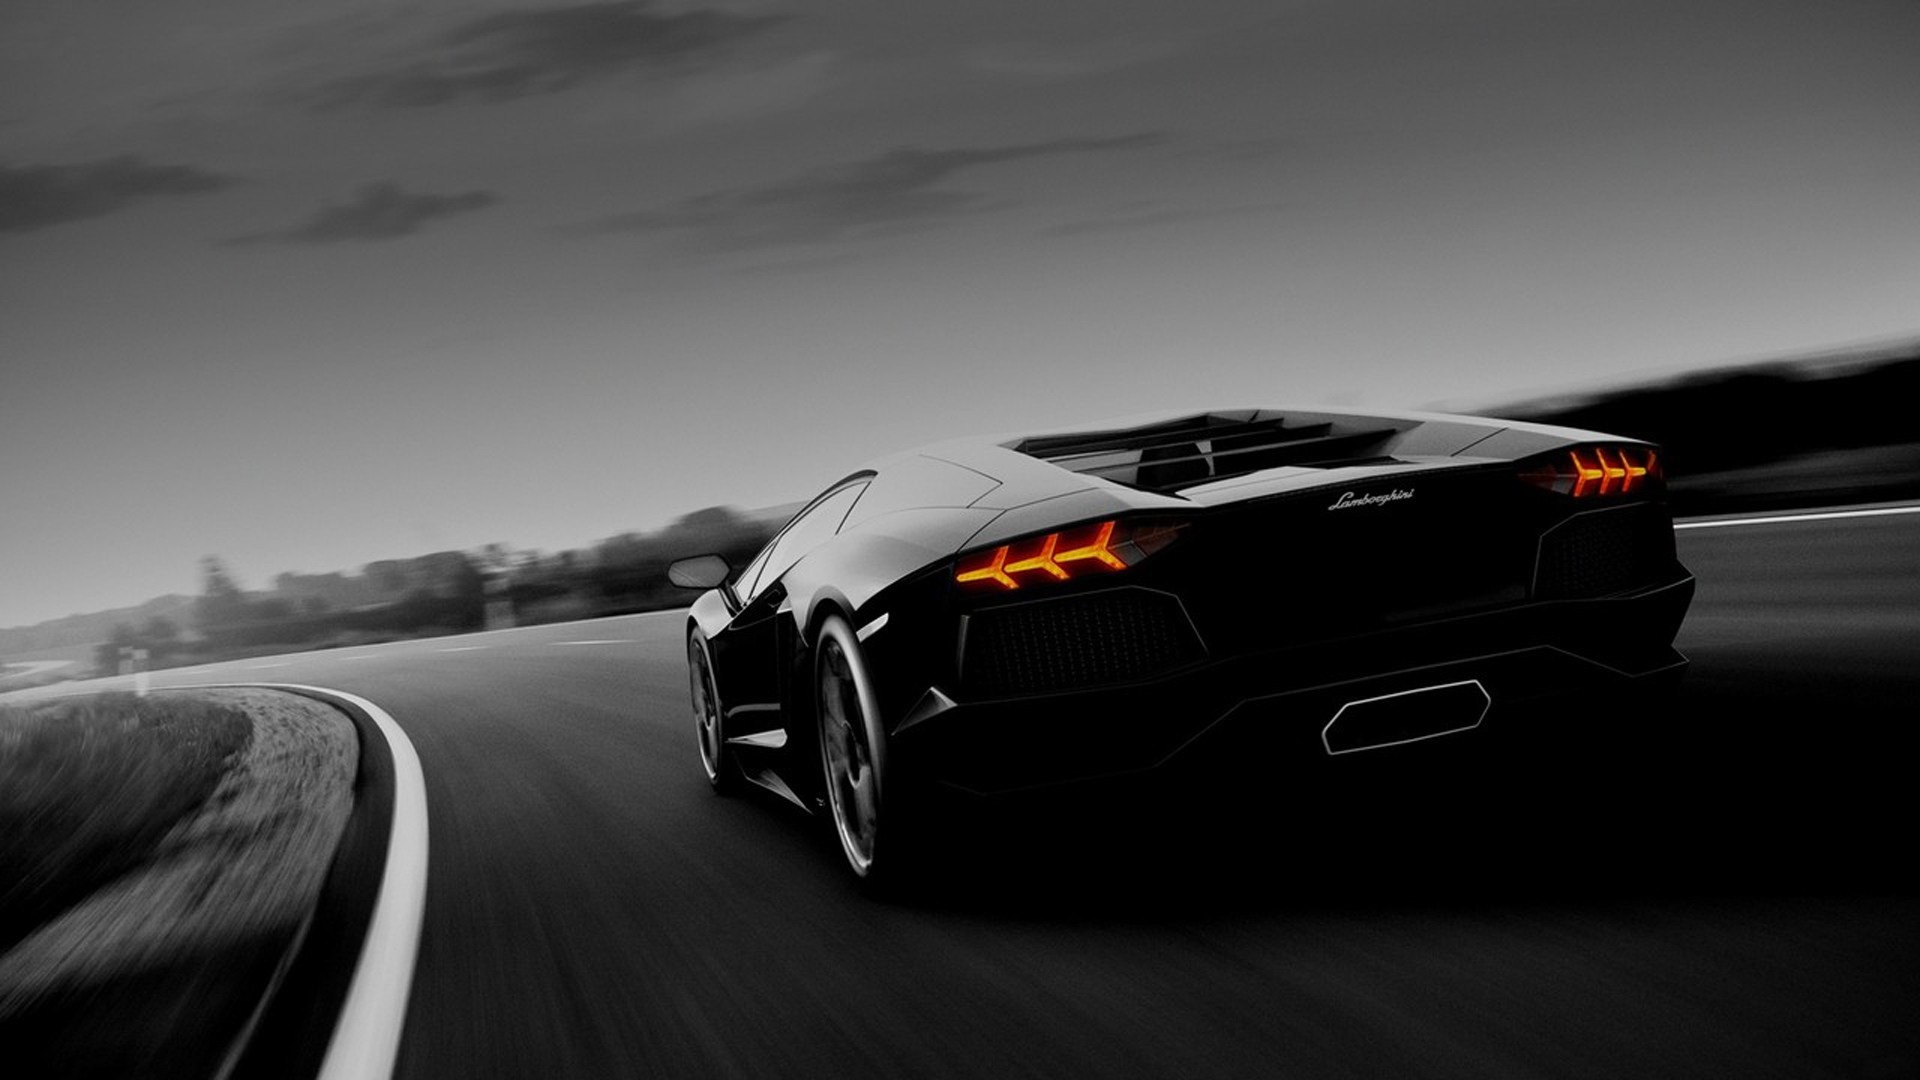 lamborghini wallpapers racing murcielago black wallpaper 1920x1080 1920x1080